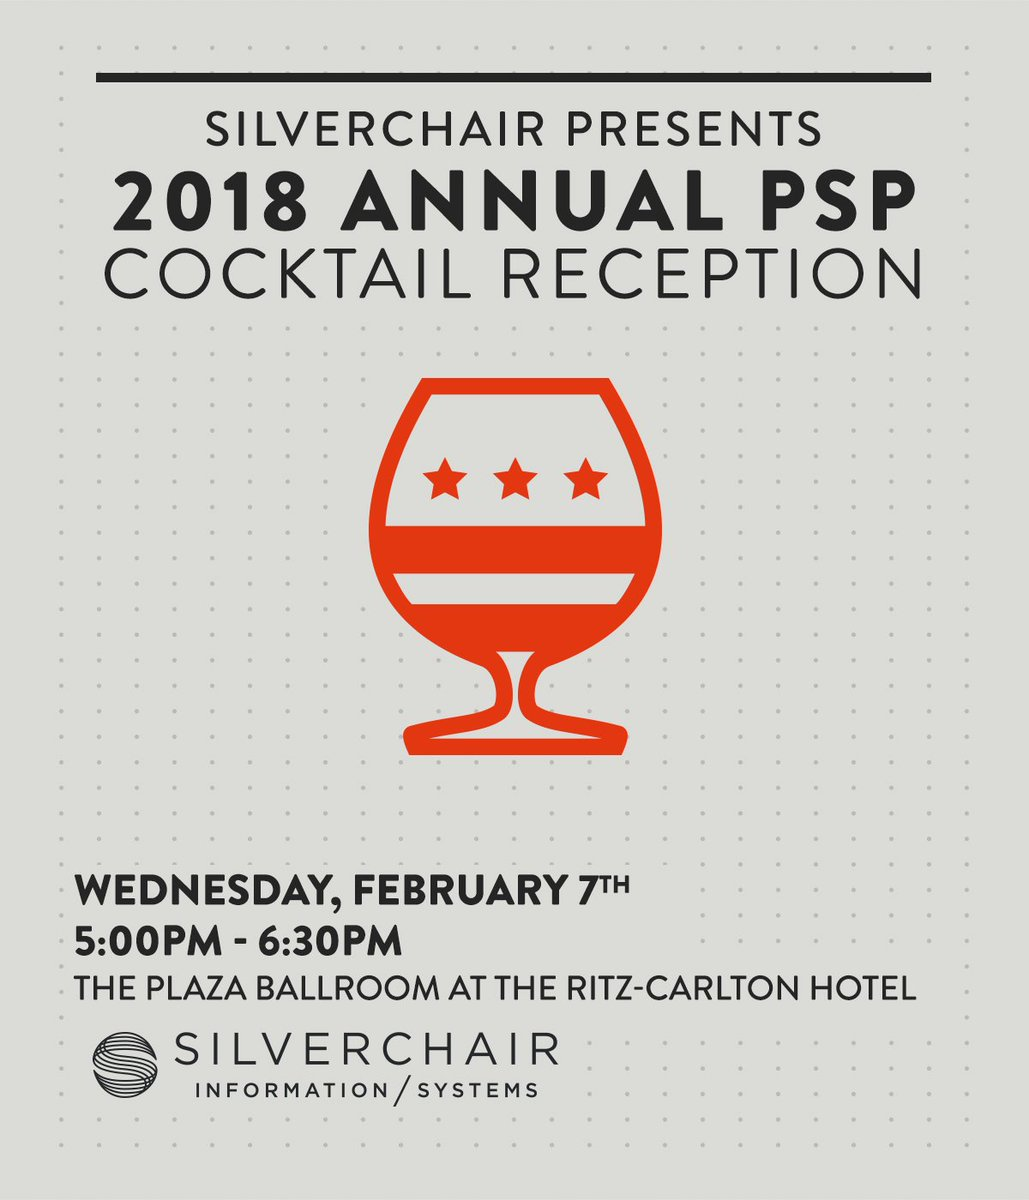 test Twitter Media - Attending the PSP annual meeting in a couple of weeks? Don't miss the Silverchair-sponsored Opening Night Cocktail Reception! Reach out to us at info@silverchair.com to set up a meeting during the conference. #2018PSP https://t.co/PBm8Ac8geK